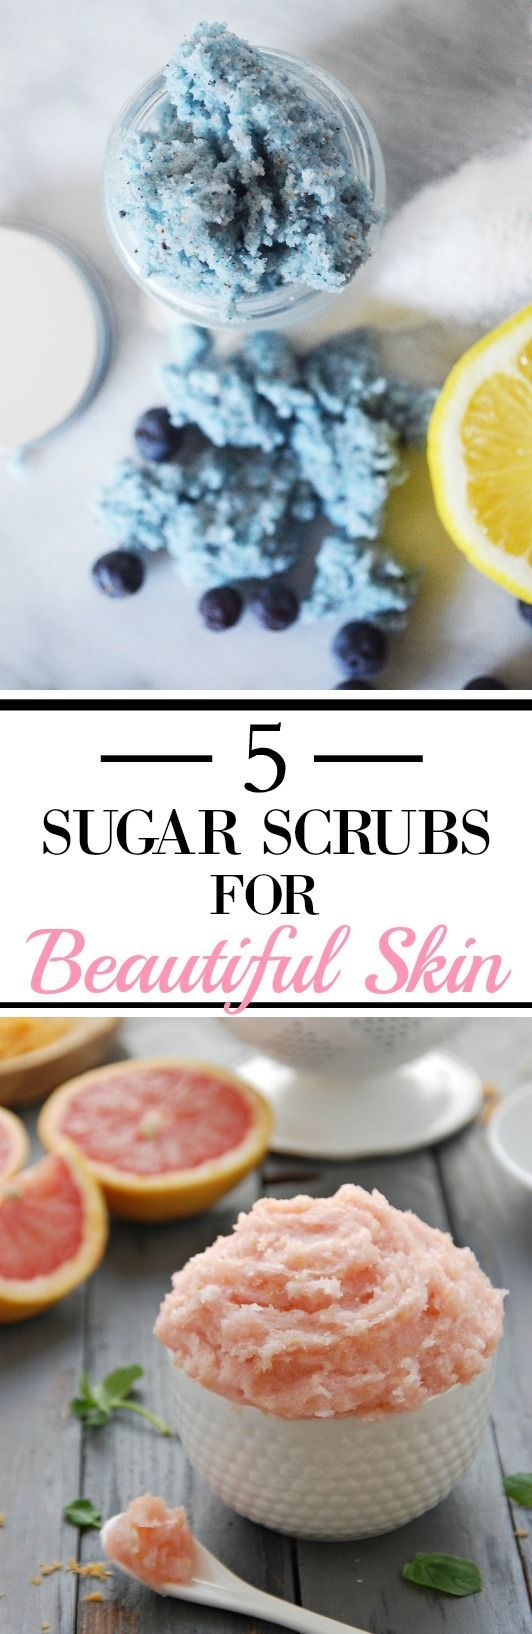 These 5 scrubs for beautiful skin are GREAT! I tried the blueberry one and my skin feels AMAZING! It also looks a bit younger too! Definitely trying out the coffee one next! And that grapefruit scrub looks beautiful and has some AWESOME benefits! I can't wait to make them all! They're so easy and simple!